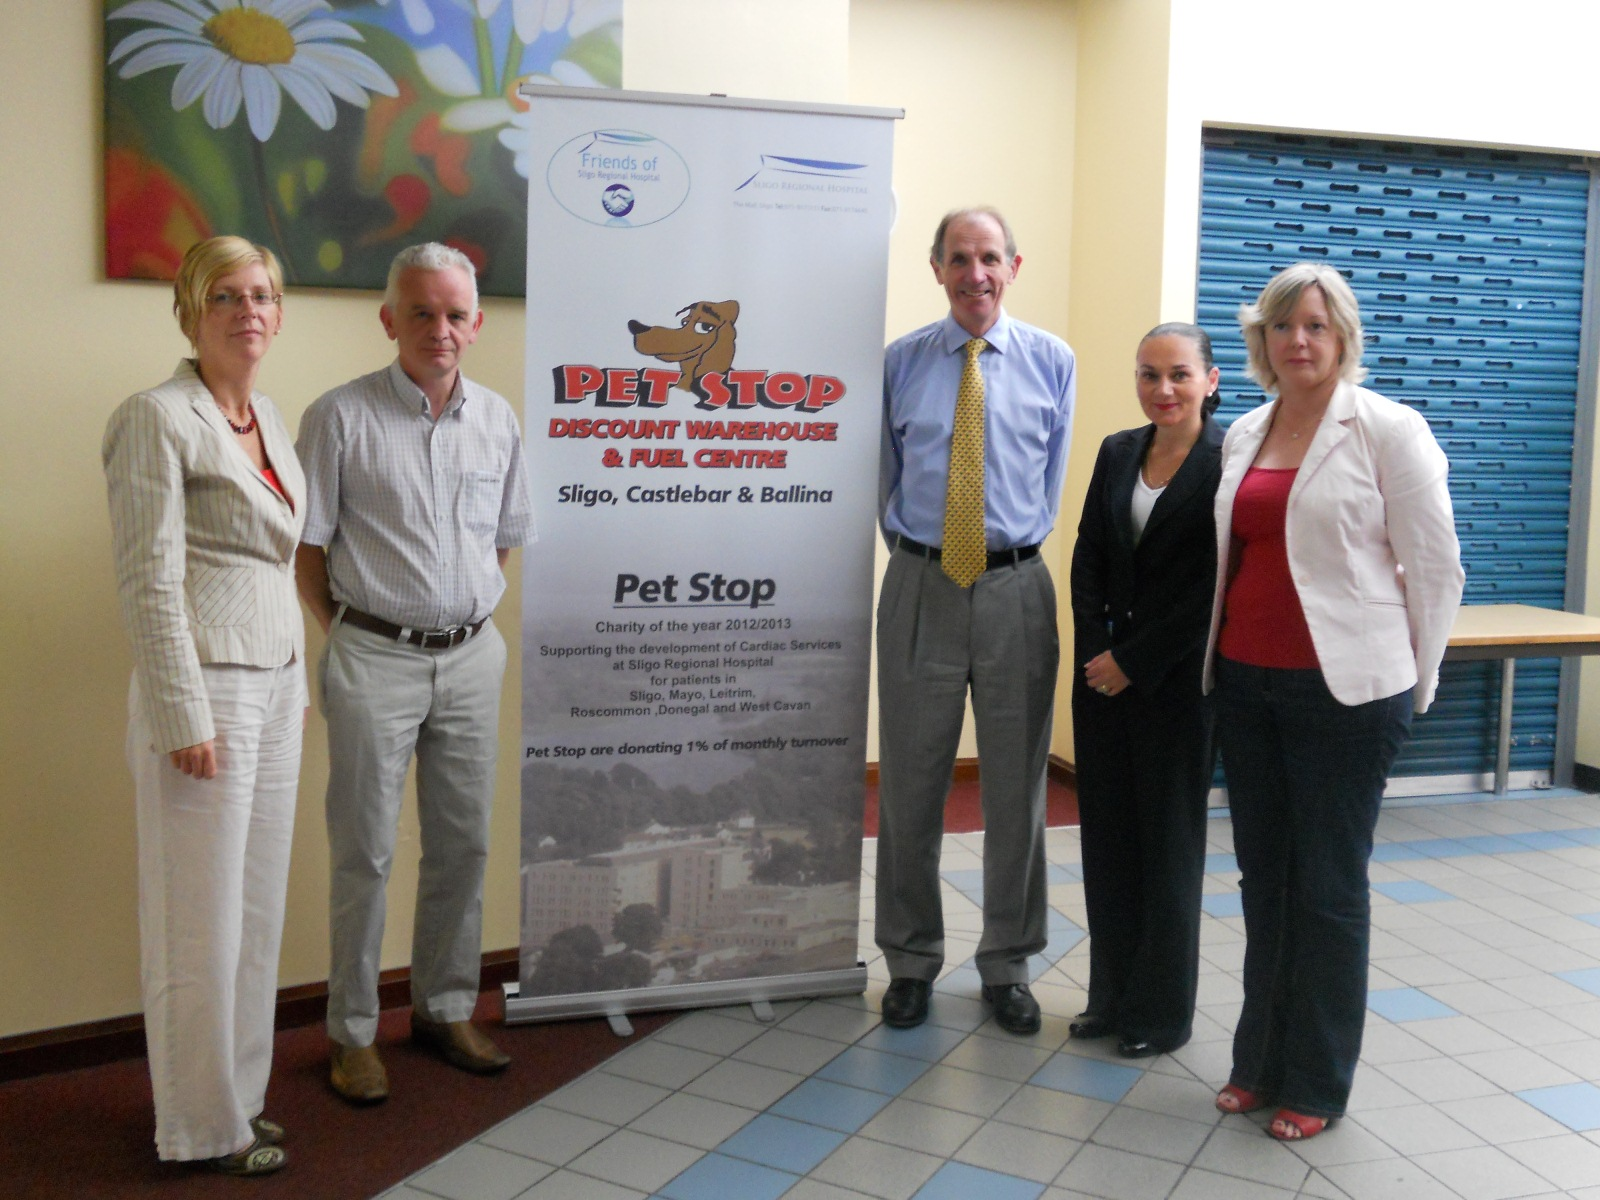 Pet Stop funding campaign for Cardiac Services Sligo University Hospital